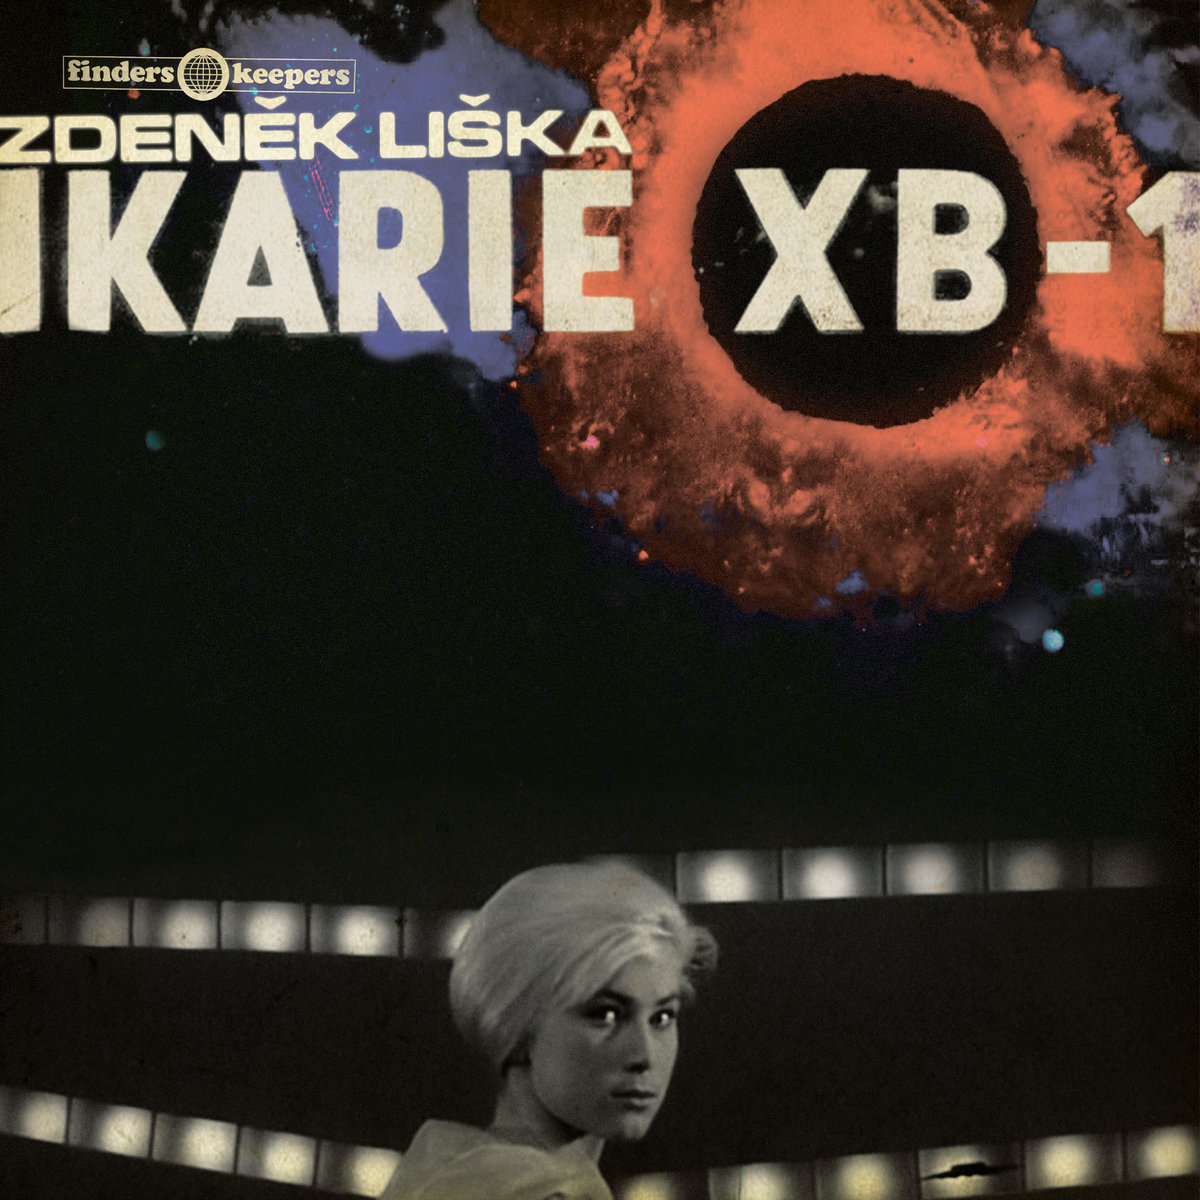 Ikarie Xb 1 Finders Keepers Records